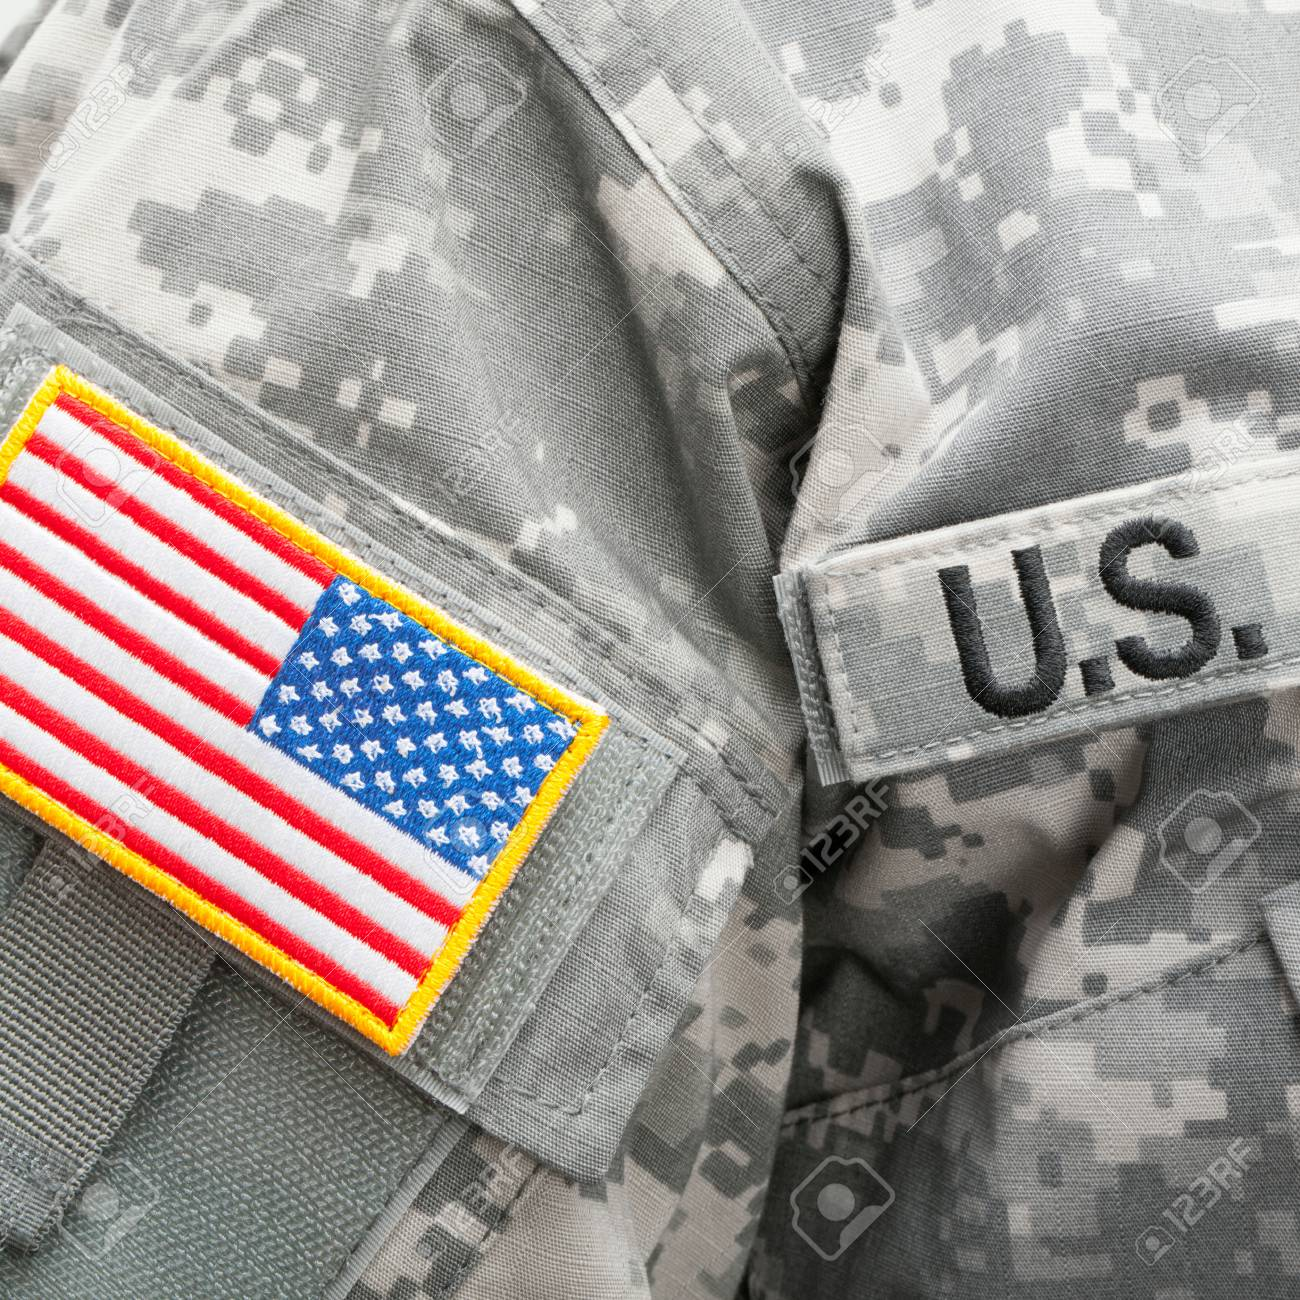 58b1b54c354c Close up studio shot of USA flag U.S. ARMY patch attached to military  uniform Stock Photo